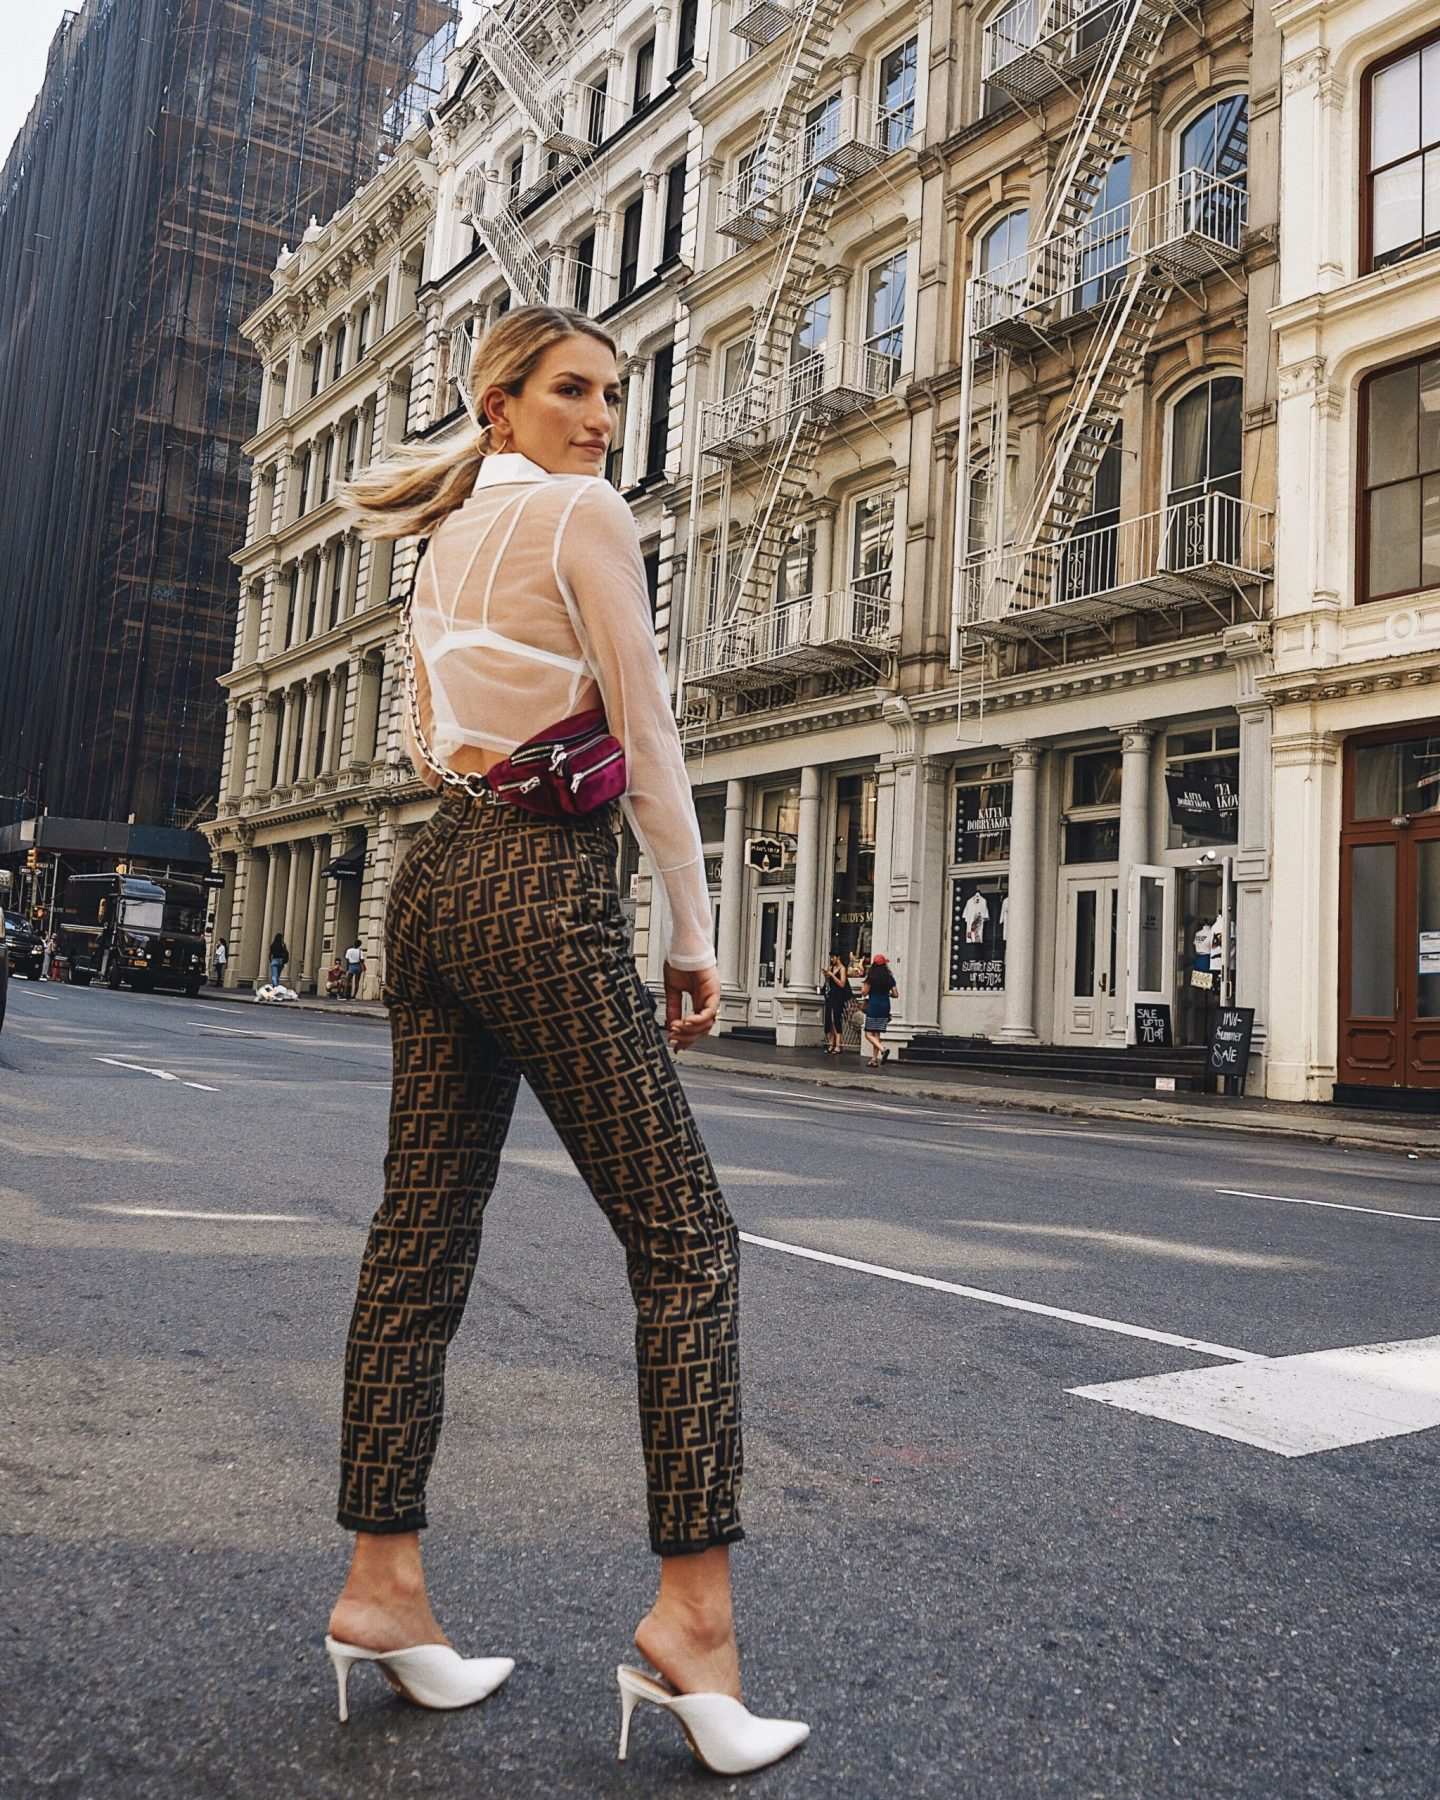 Cassandra DiMicco, Cass DiMicco, Dressed For Dreams, NYC, New York City, New York, Street Style NYC, Street Style 2018, NYC Street Style, NYC Outfit Inspo Street Style Outfits, 2018 Trends, Summer Style, Summer Outfit Inspo, NYC Fashion Blogger, NYC Fashion Blogger, NYC to do list, NYC to do, NYC bucket list, NYC Instagram Spots, vintage fendi pants, sheer crop top, vintage fendi, fendi logo pants, fendi, Alexander wang, Alexander wang Attica fanny pack, Schutz Charla mules, white heeled mules, heeled mules, schutz mules